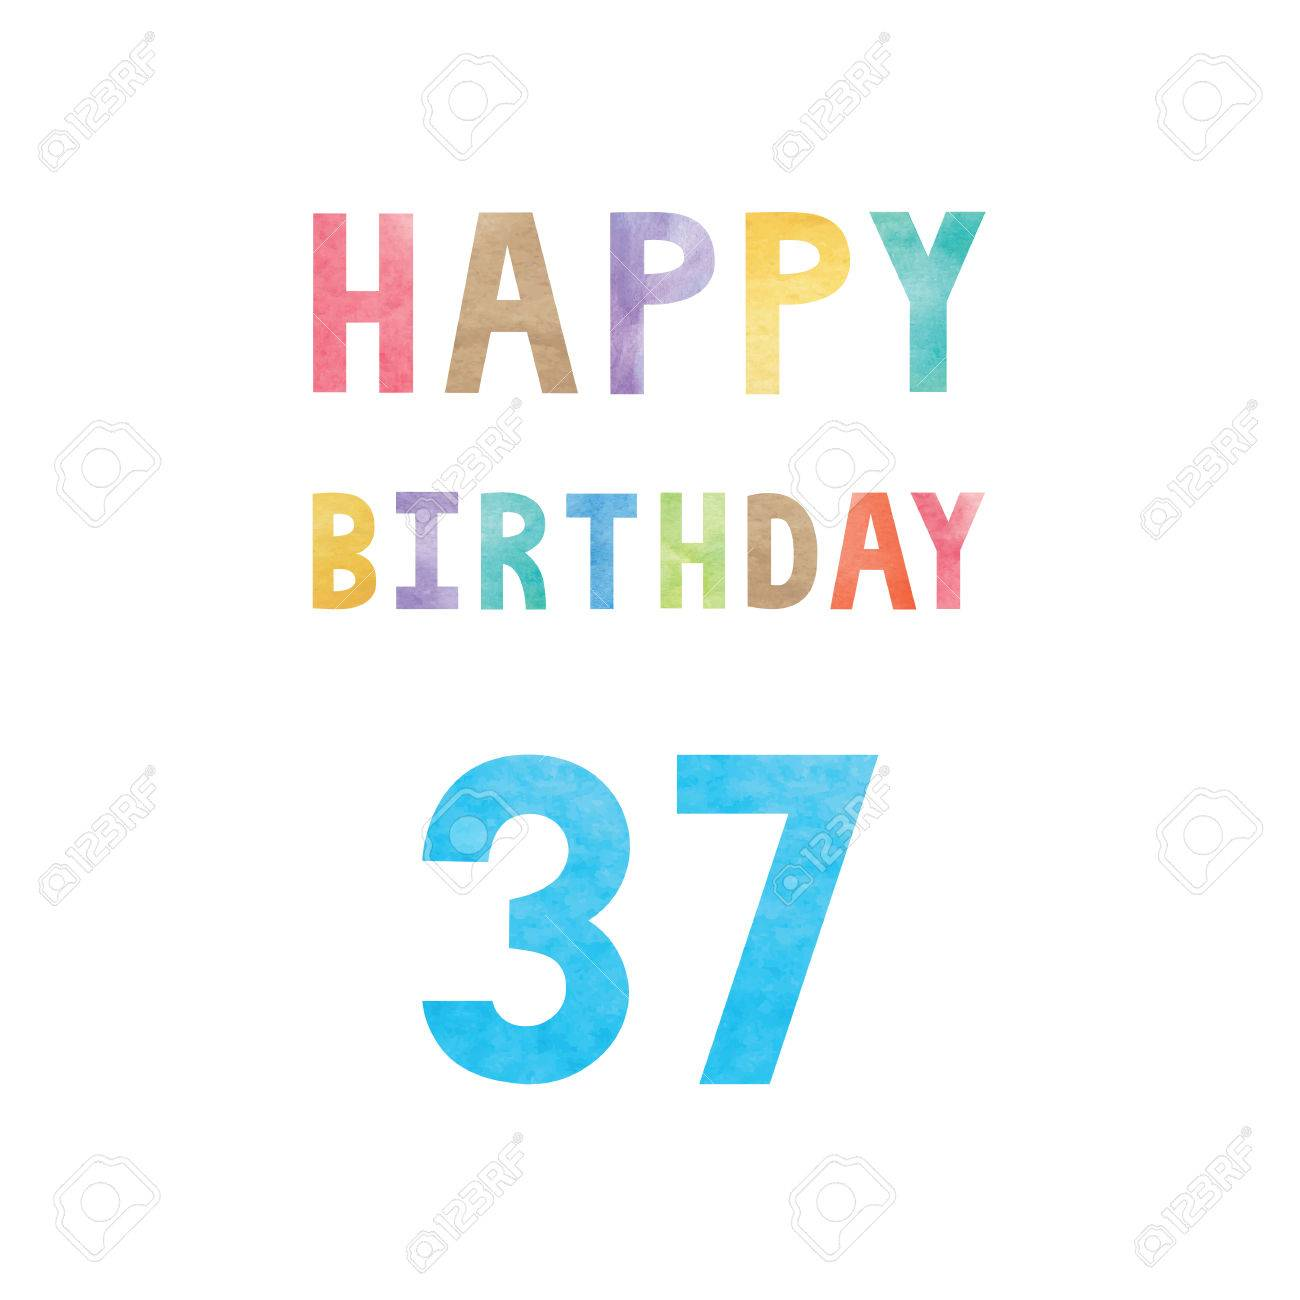 Happy 37th Birthday Anniversary Card With Colorful Watercolor